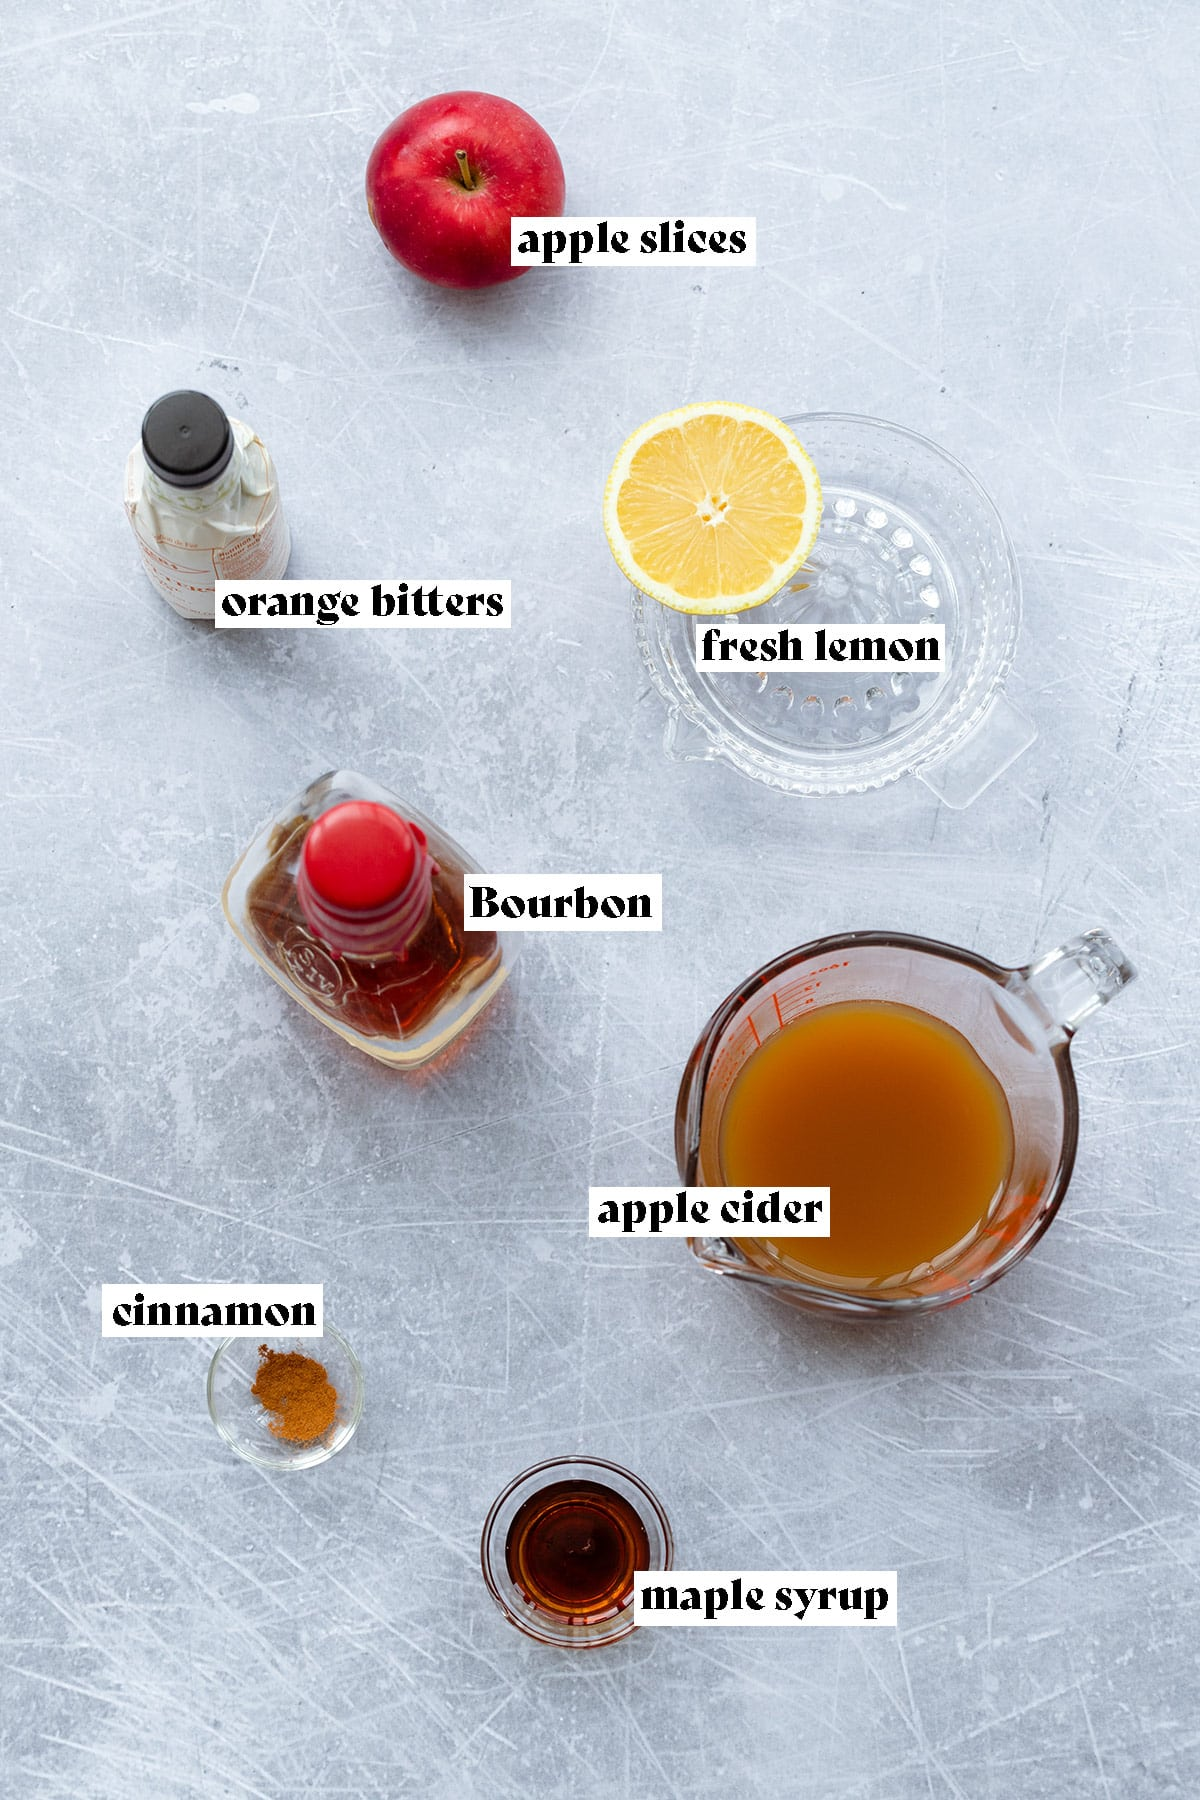 Ingredients for the Bourbon apple cider cocktail laid out on y light metal background.